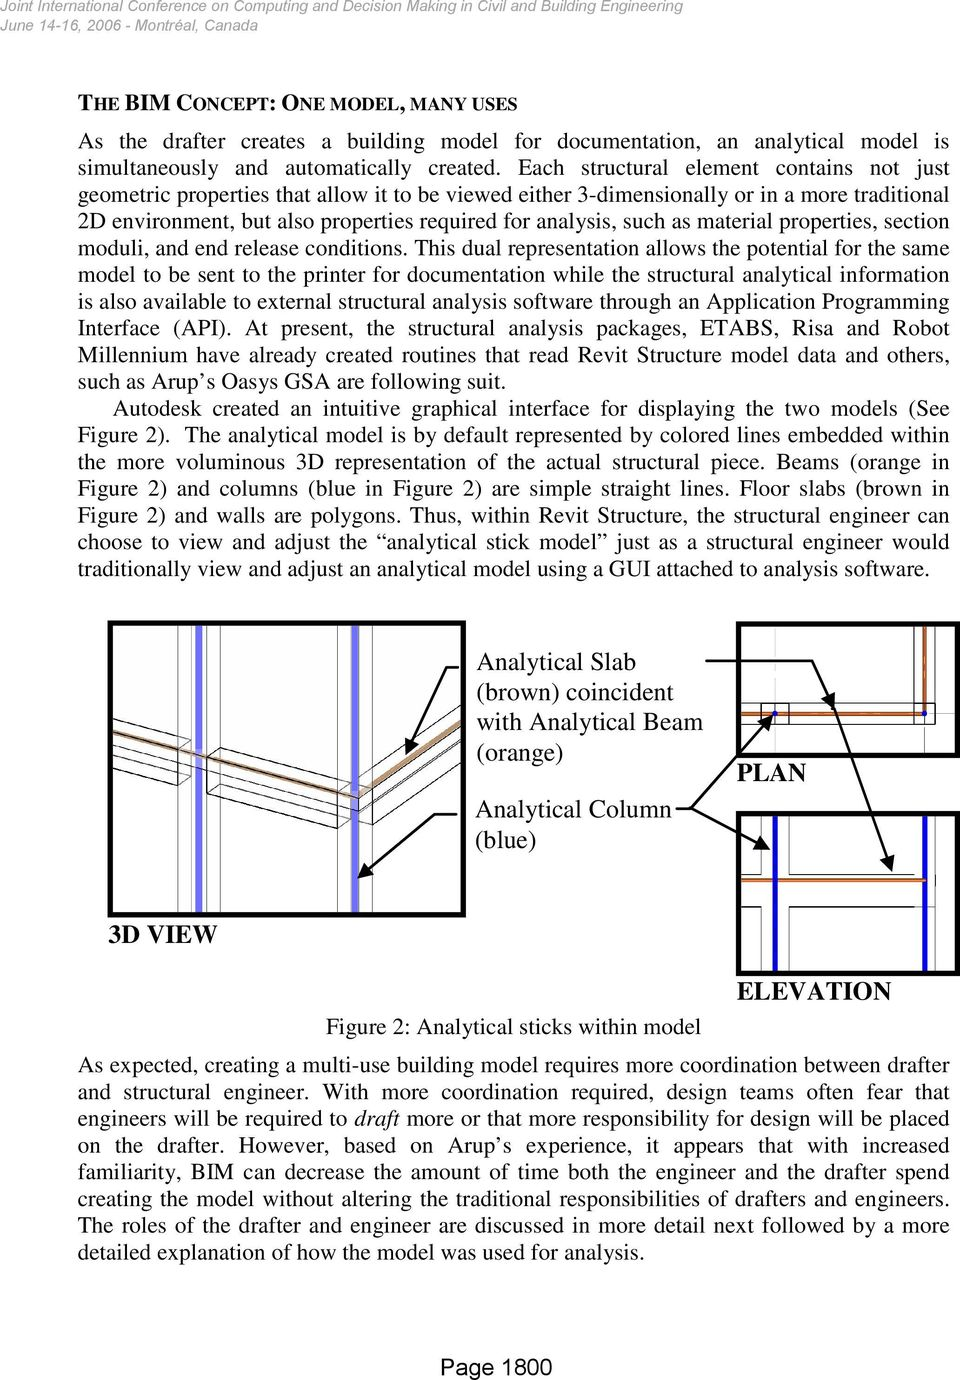 A CASE STUDY IN STRUCTURAL DRAFTING, ANALYSIS AND DESIGN USING AN